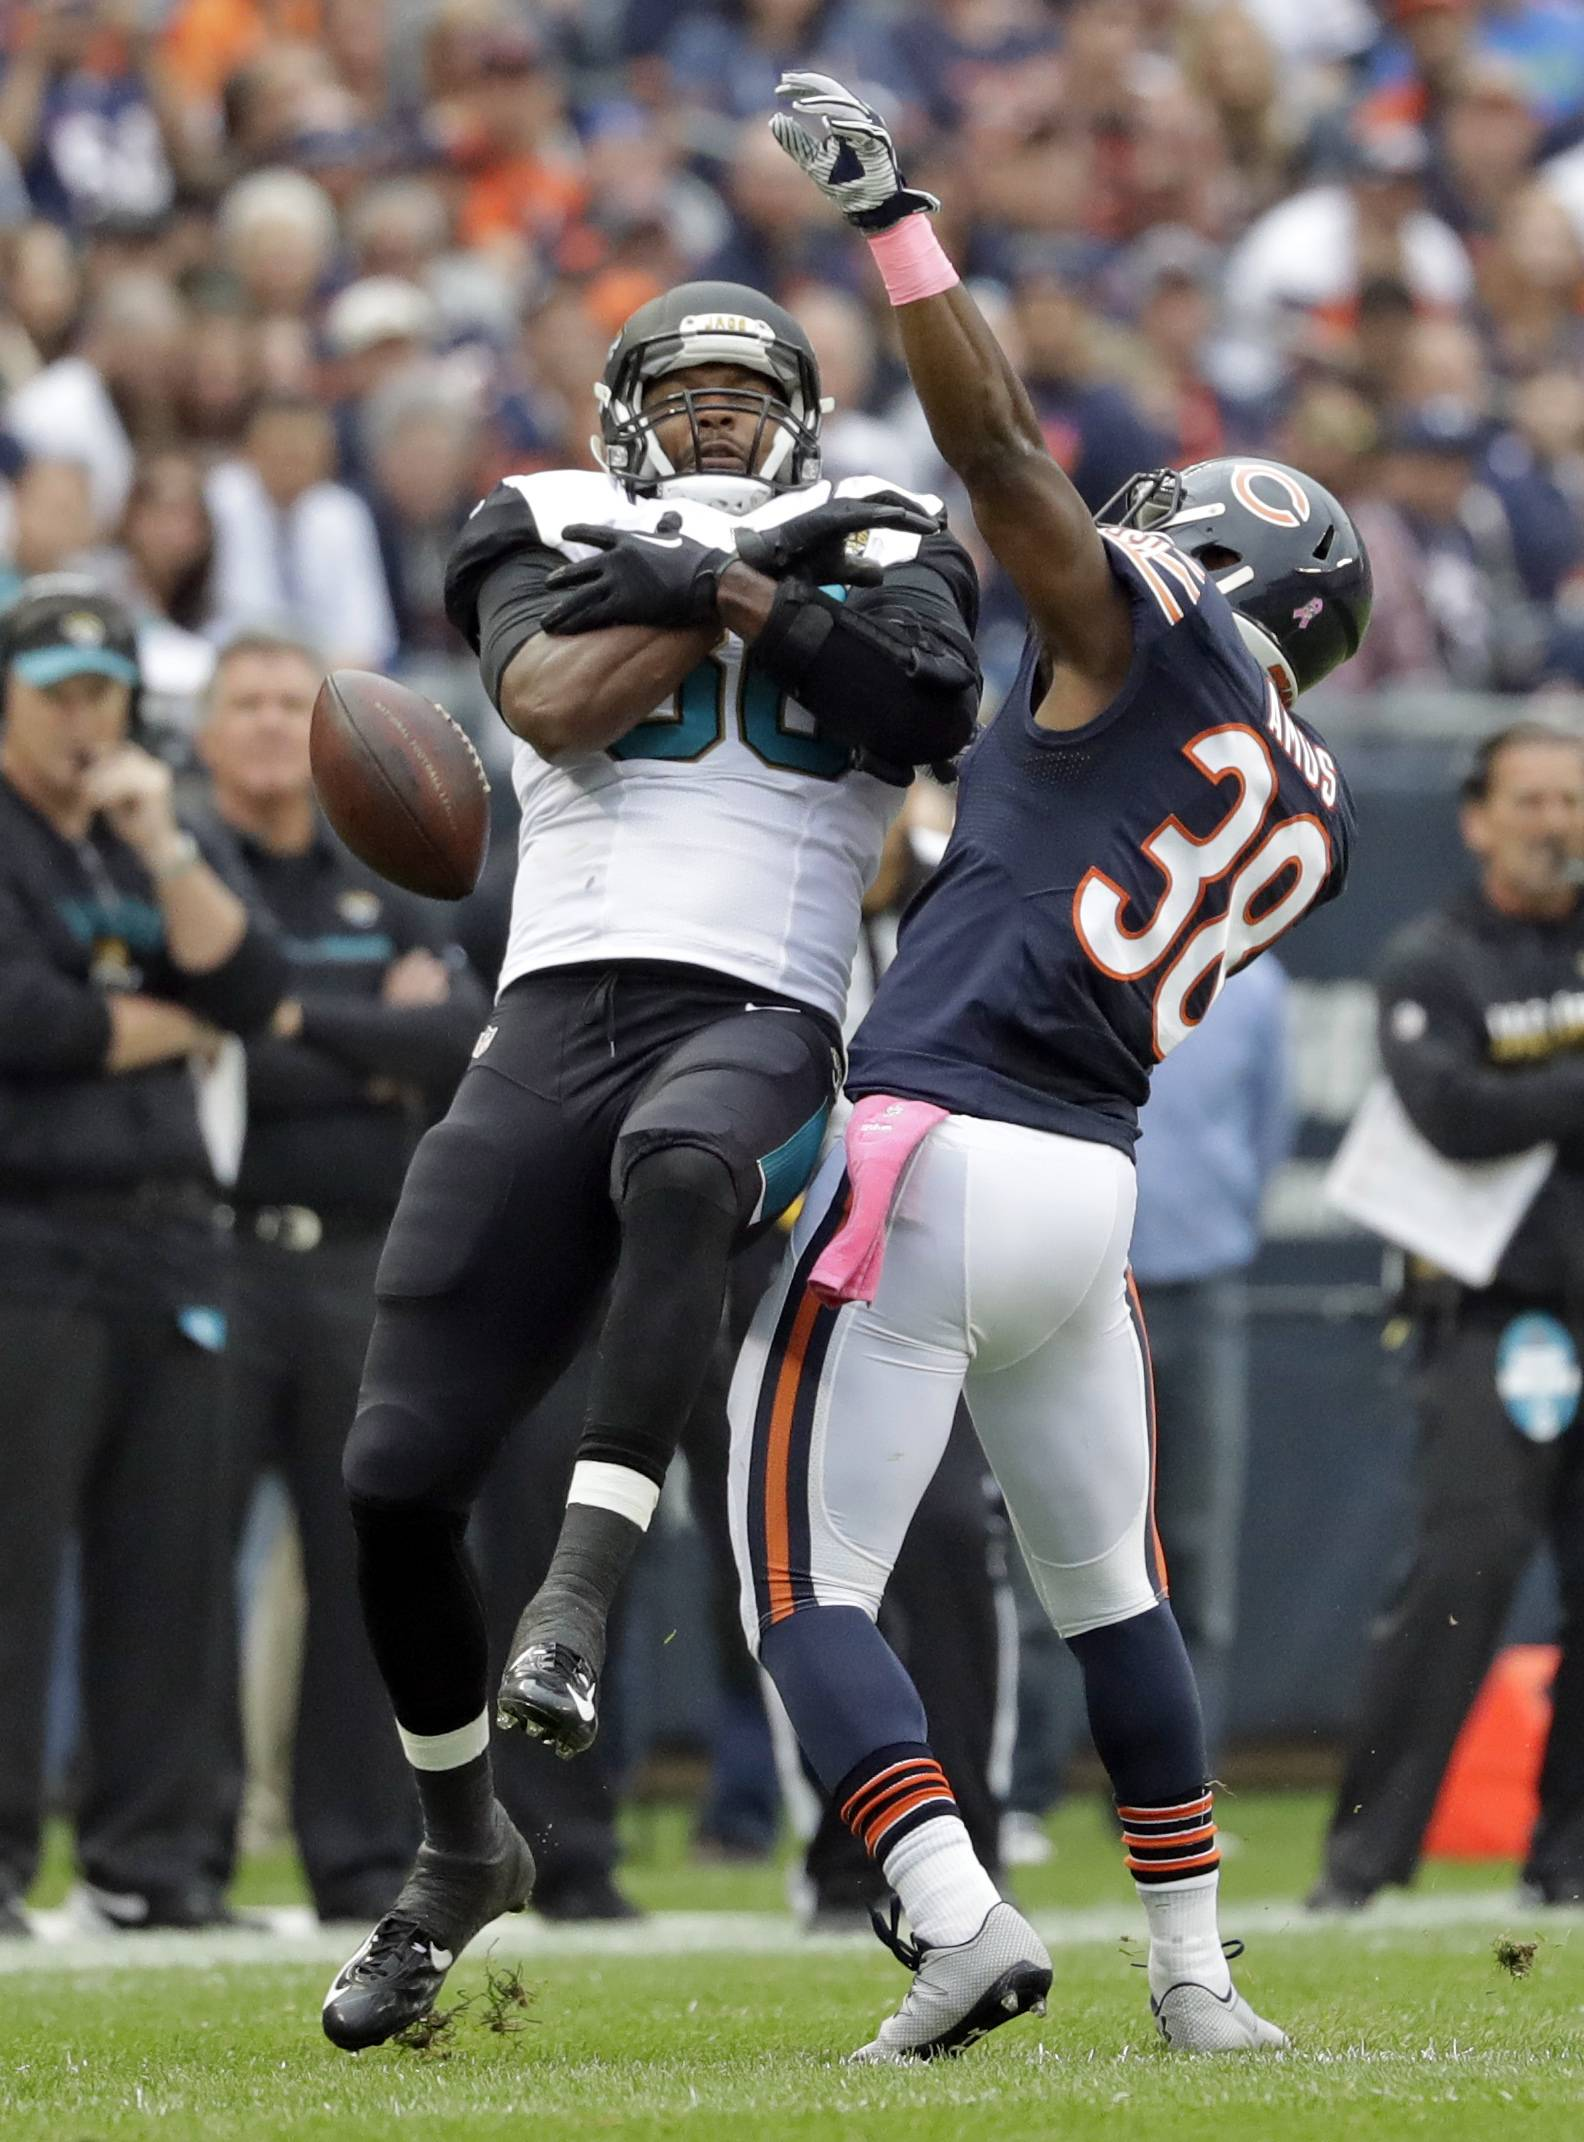 Chicago Bears free safety Adrian Amos (38) breaks up a pass intended for Jacksonville Jaguars tight end Julius Thomas (80) during the first half of an NFL football game in Chicago, Sunday, Oct. 16, 2016. (AP Photo/Jeff Roberson)